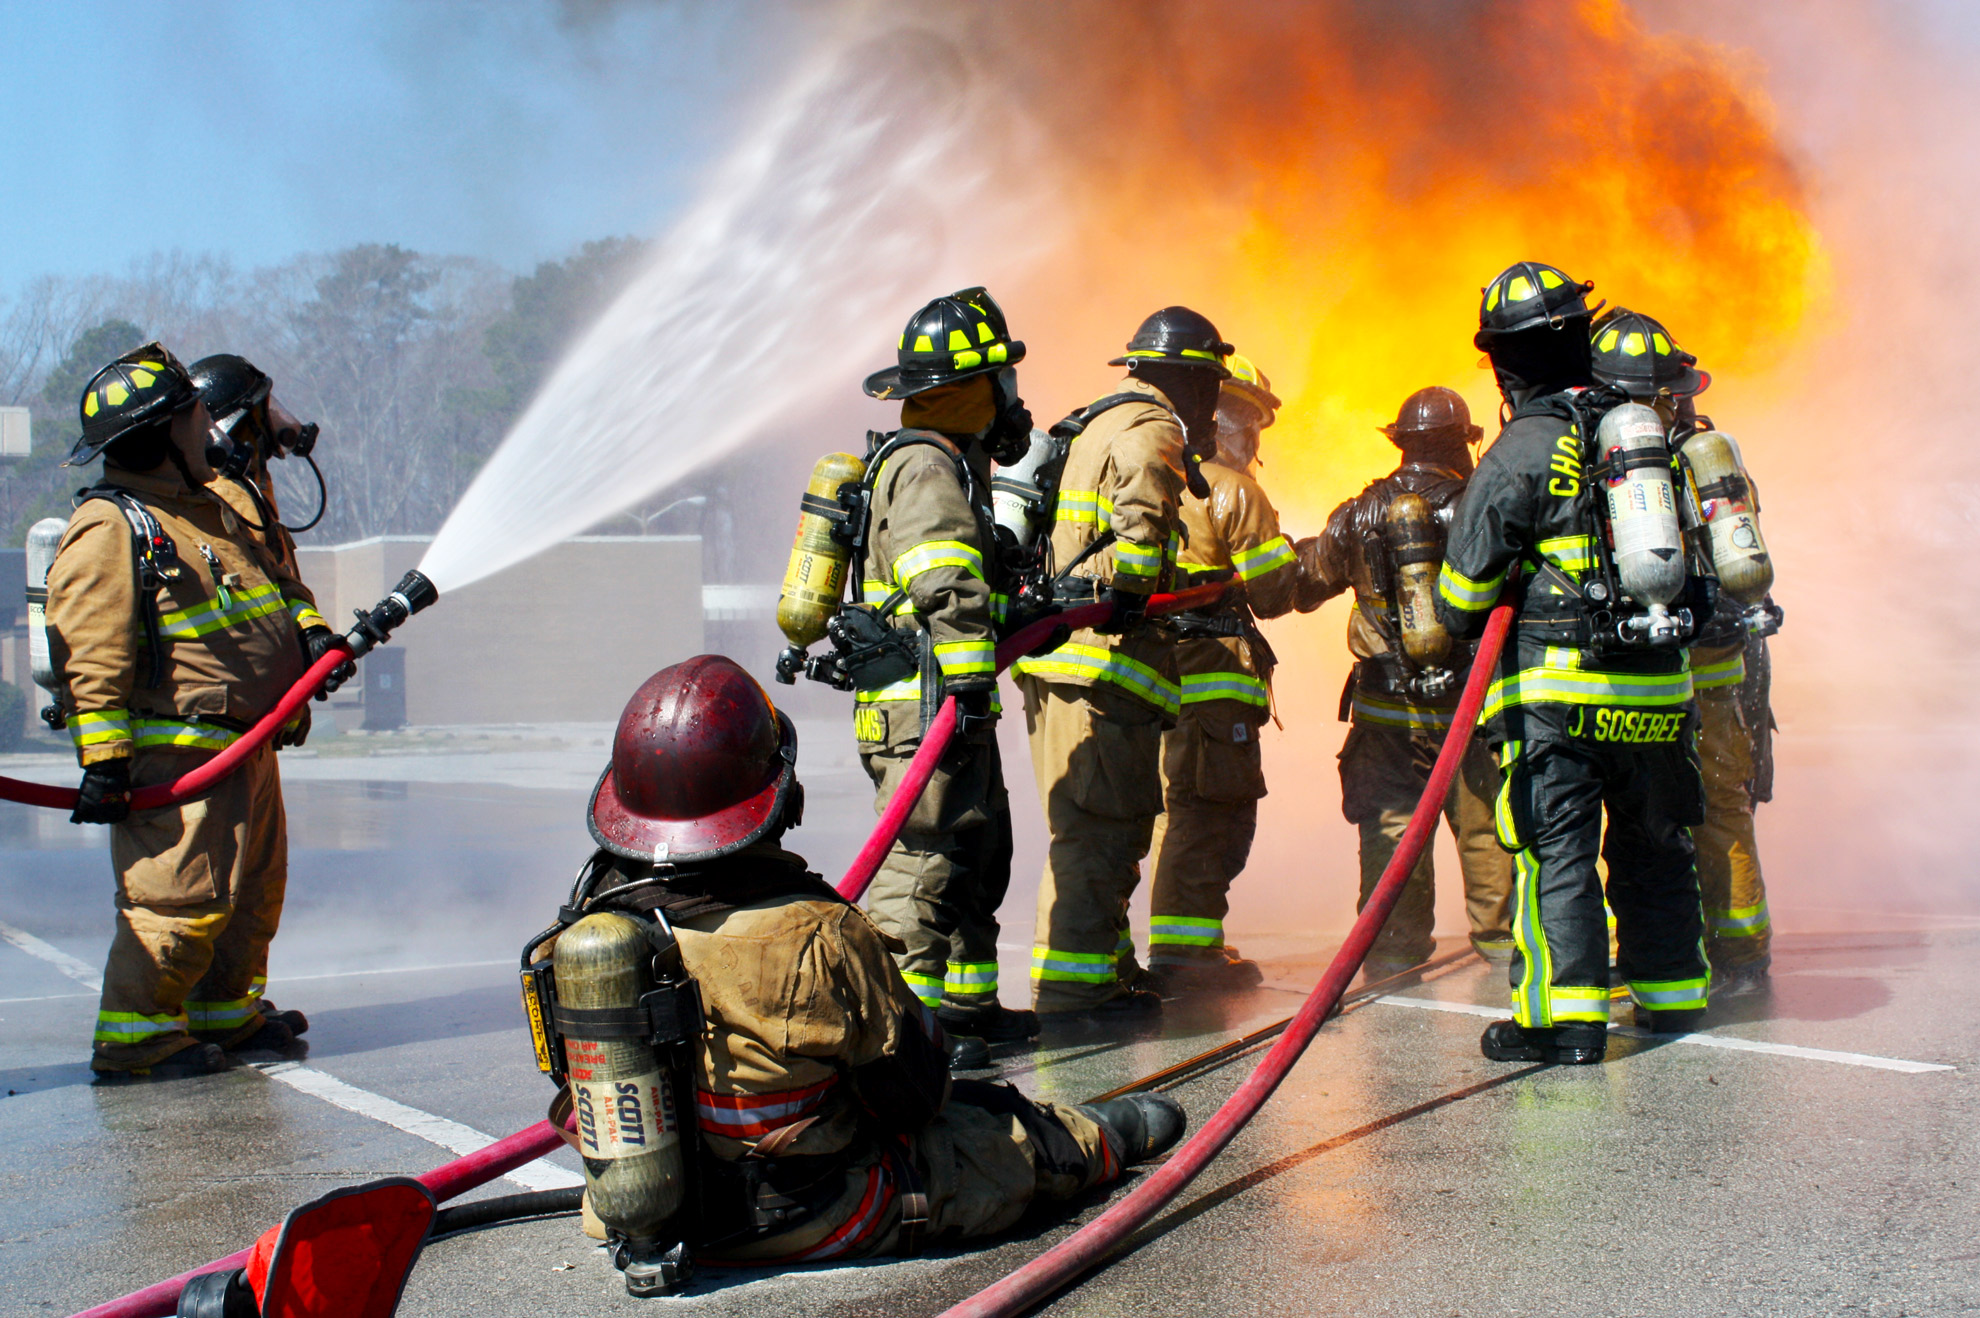 A team of firefighters practices putting out a live fire.